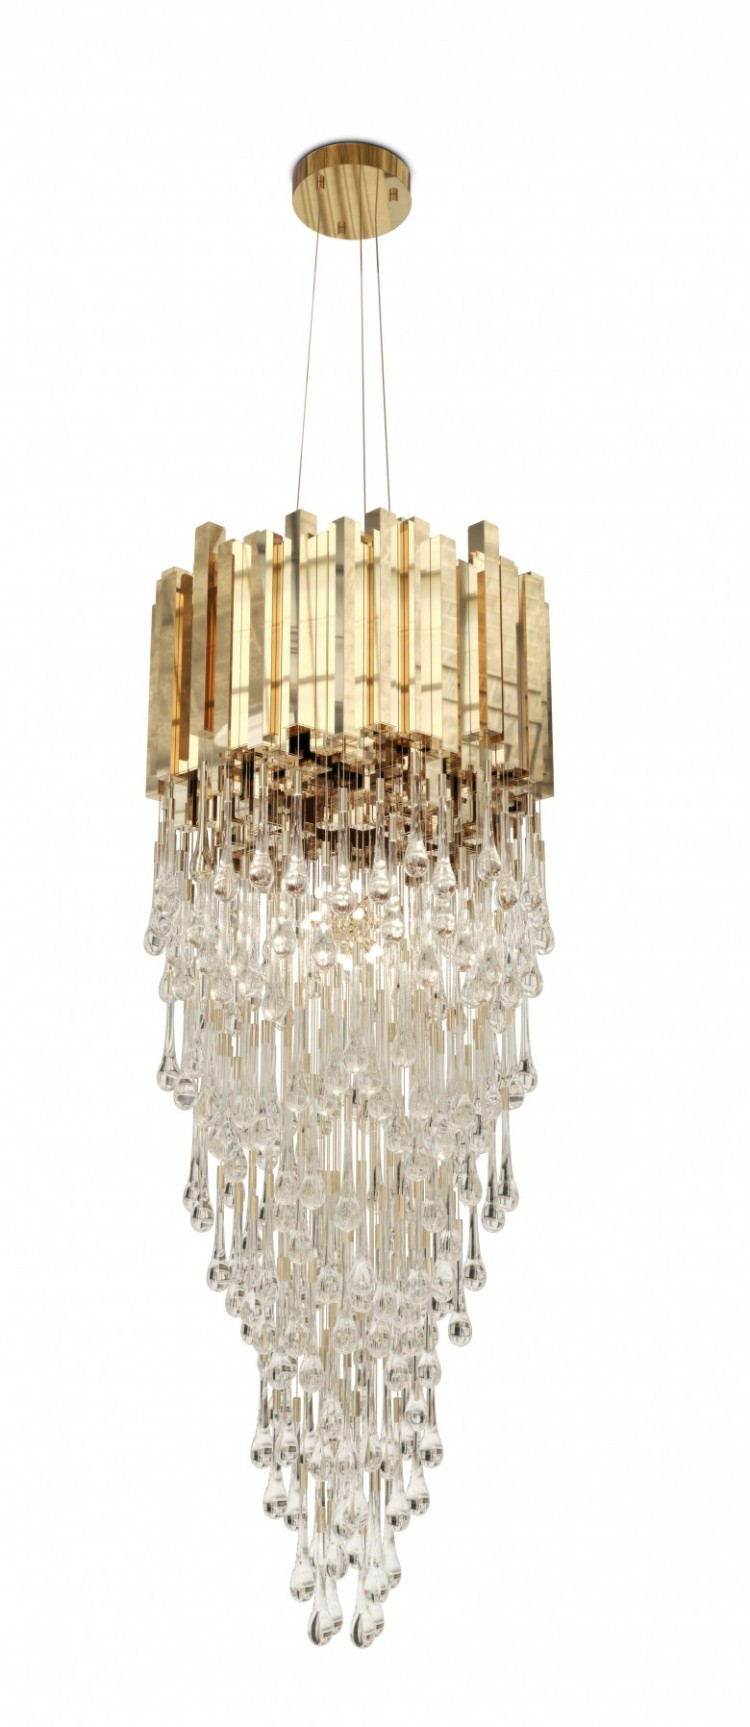 Trump Chandelier dining room Where to buy Dining Room Lighting Trump Chandelier e1456159011727